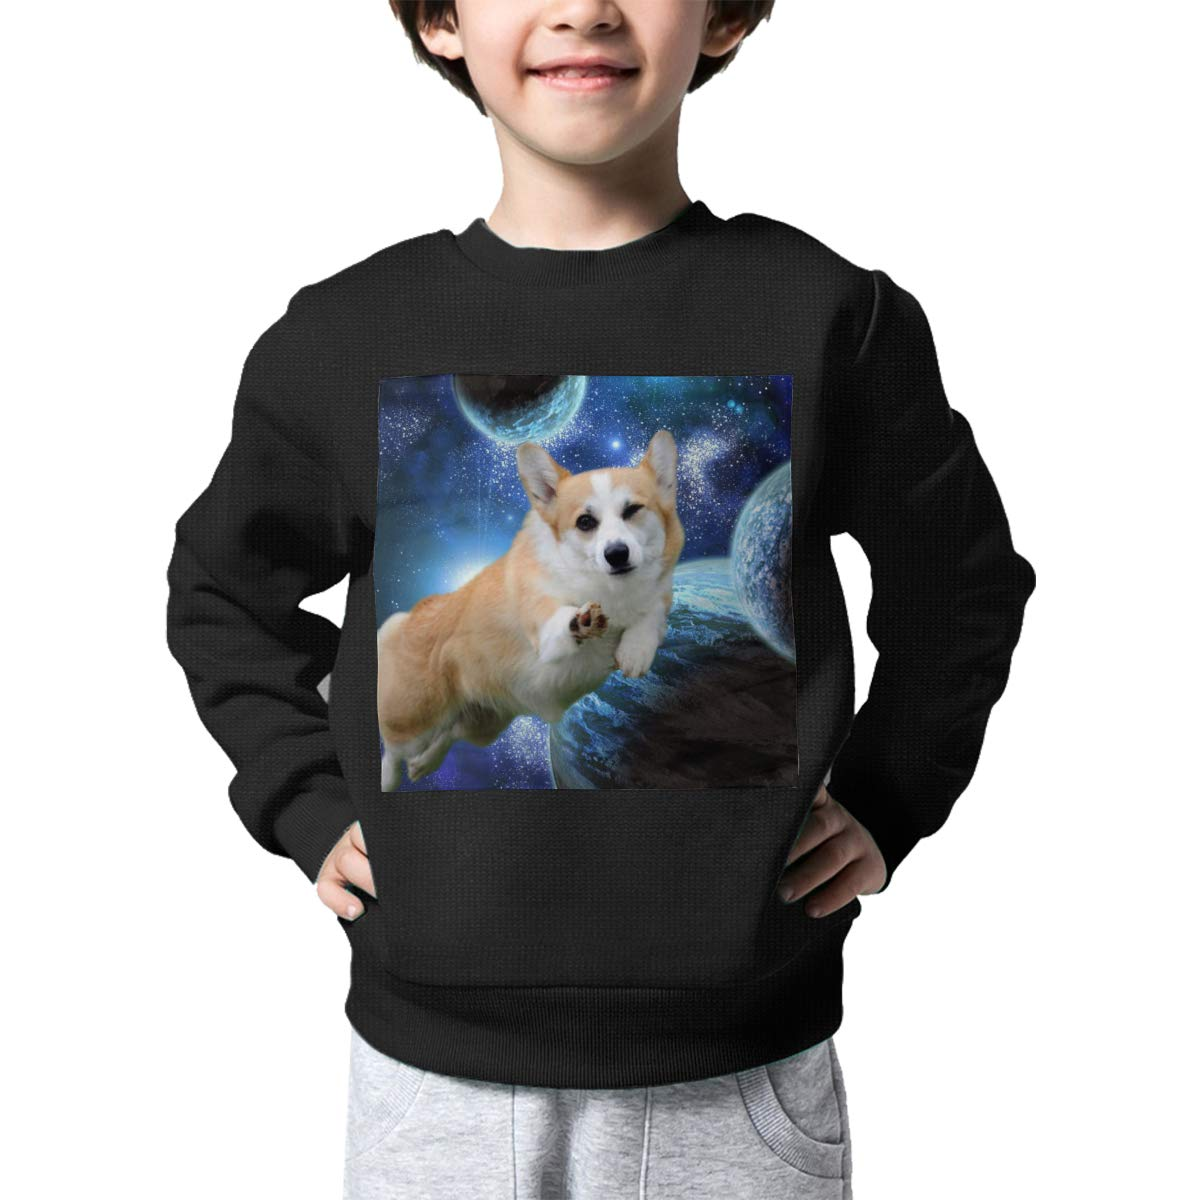 Space Corgi Kids Pullover Sweater Warm Crew Neck Knitted Sweater for 2-6T